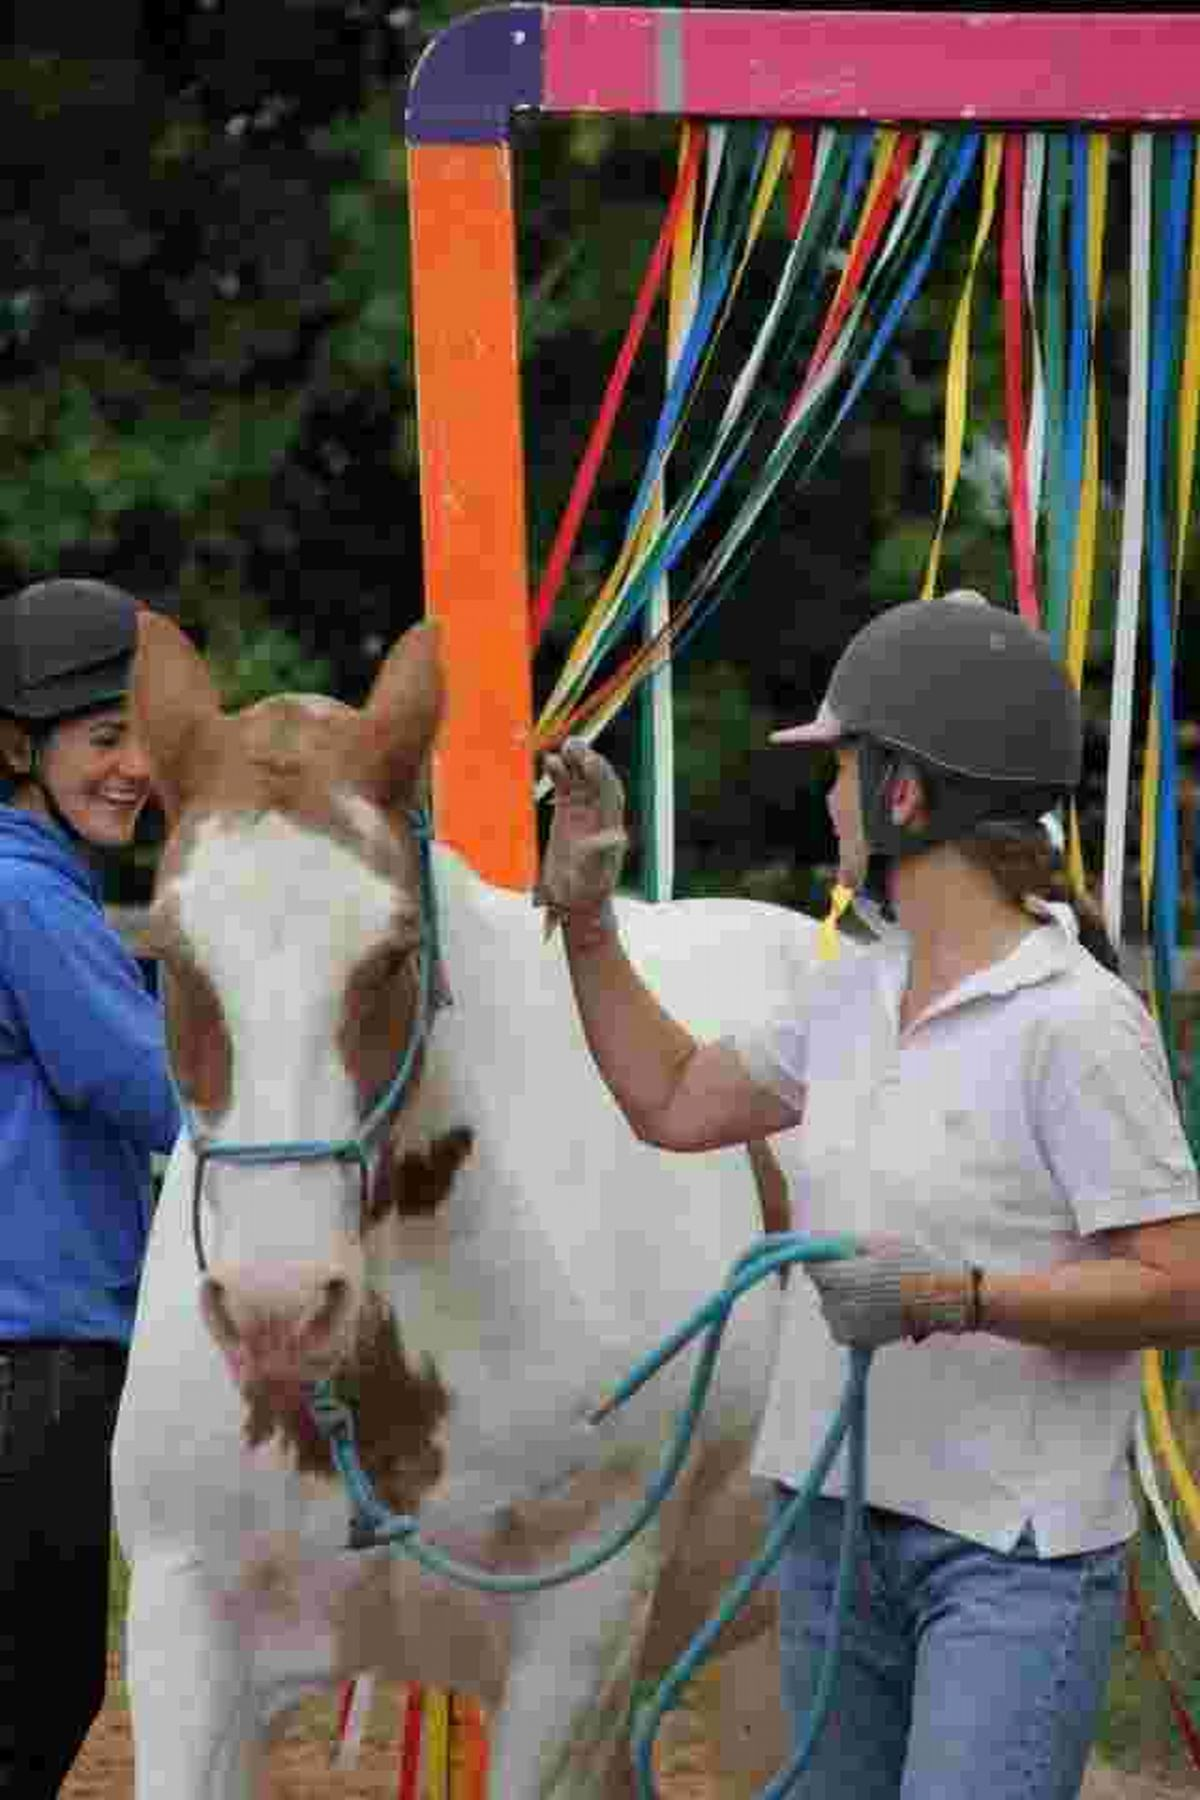 Lucy Morgans, owner of Equine Intelligence, at Homestead Farm in Houghton, set up the new practice offering training sessions.